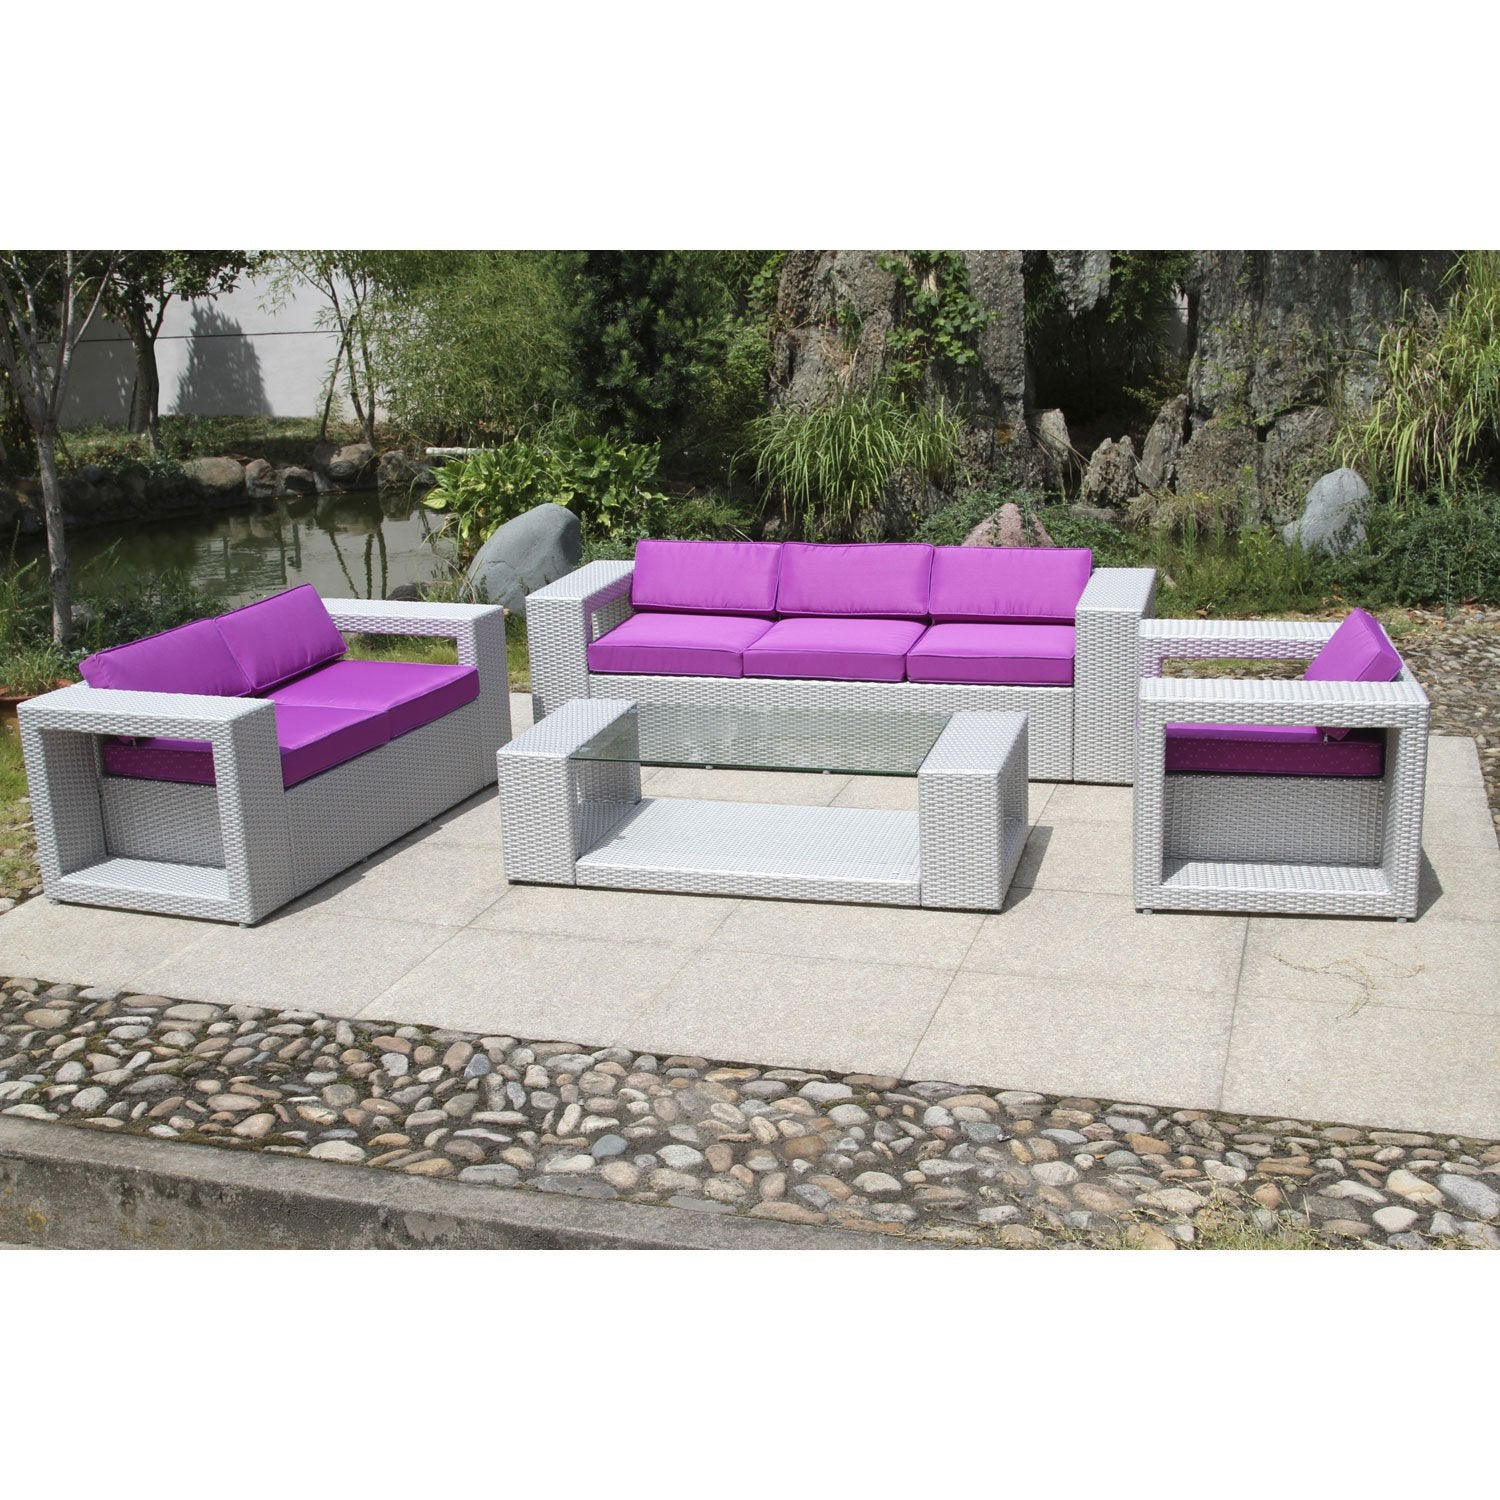 salon jardin mediterran e gris 1 canap 1 banquette 1. Black Bedroom Furniture Sets. Home Design Ideas